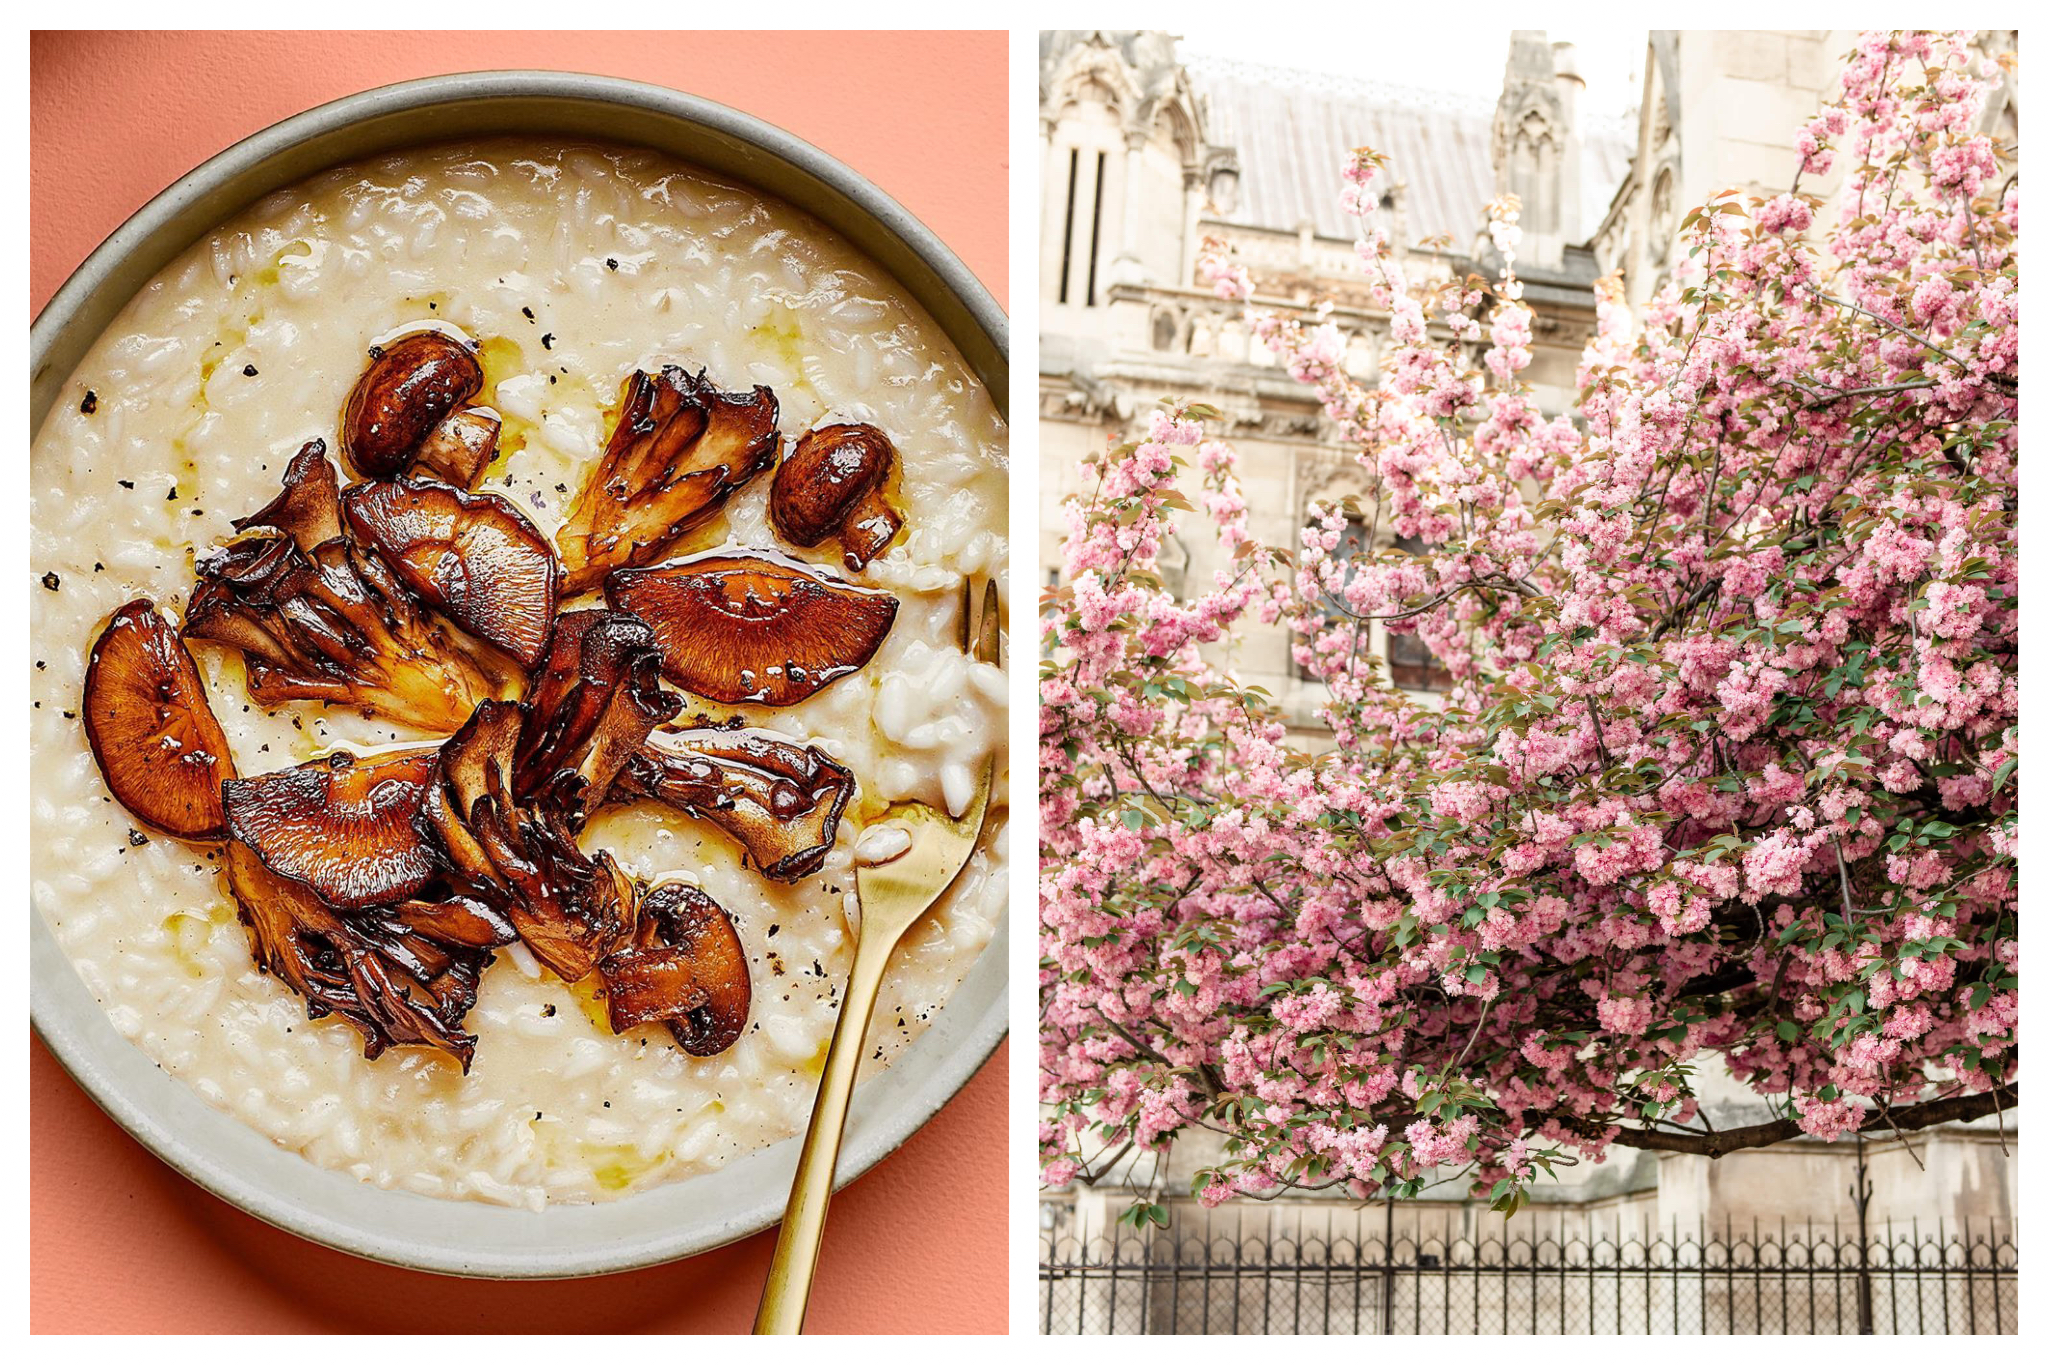 On left: A creamy mushroom risotto is perfect for the beginning of spring, when it's still chilly. On right: Fluffy cherry blossoms in full bloom by the Notre Dame Cathedral.